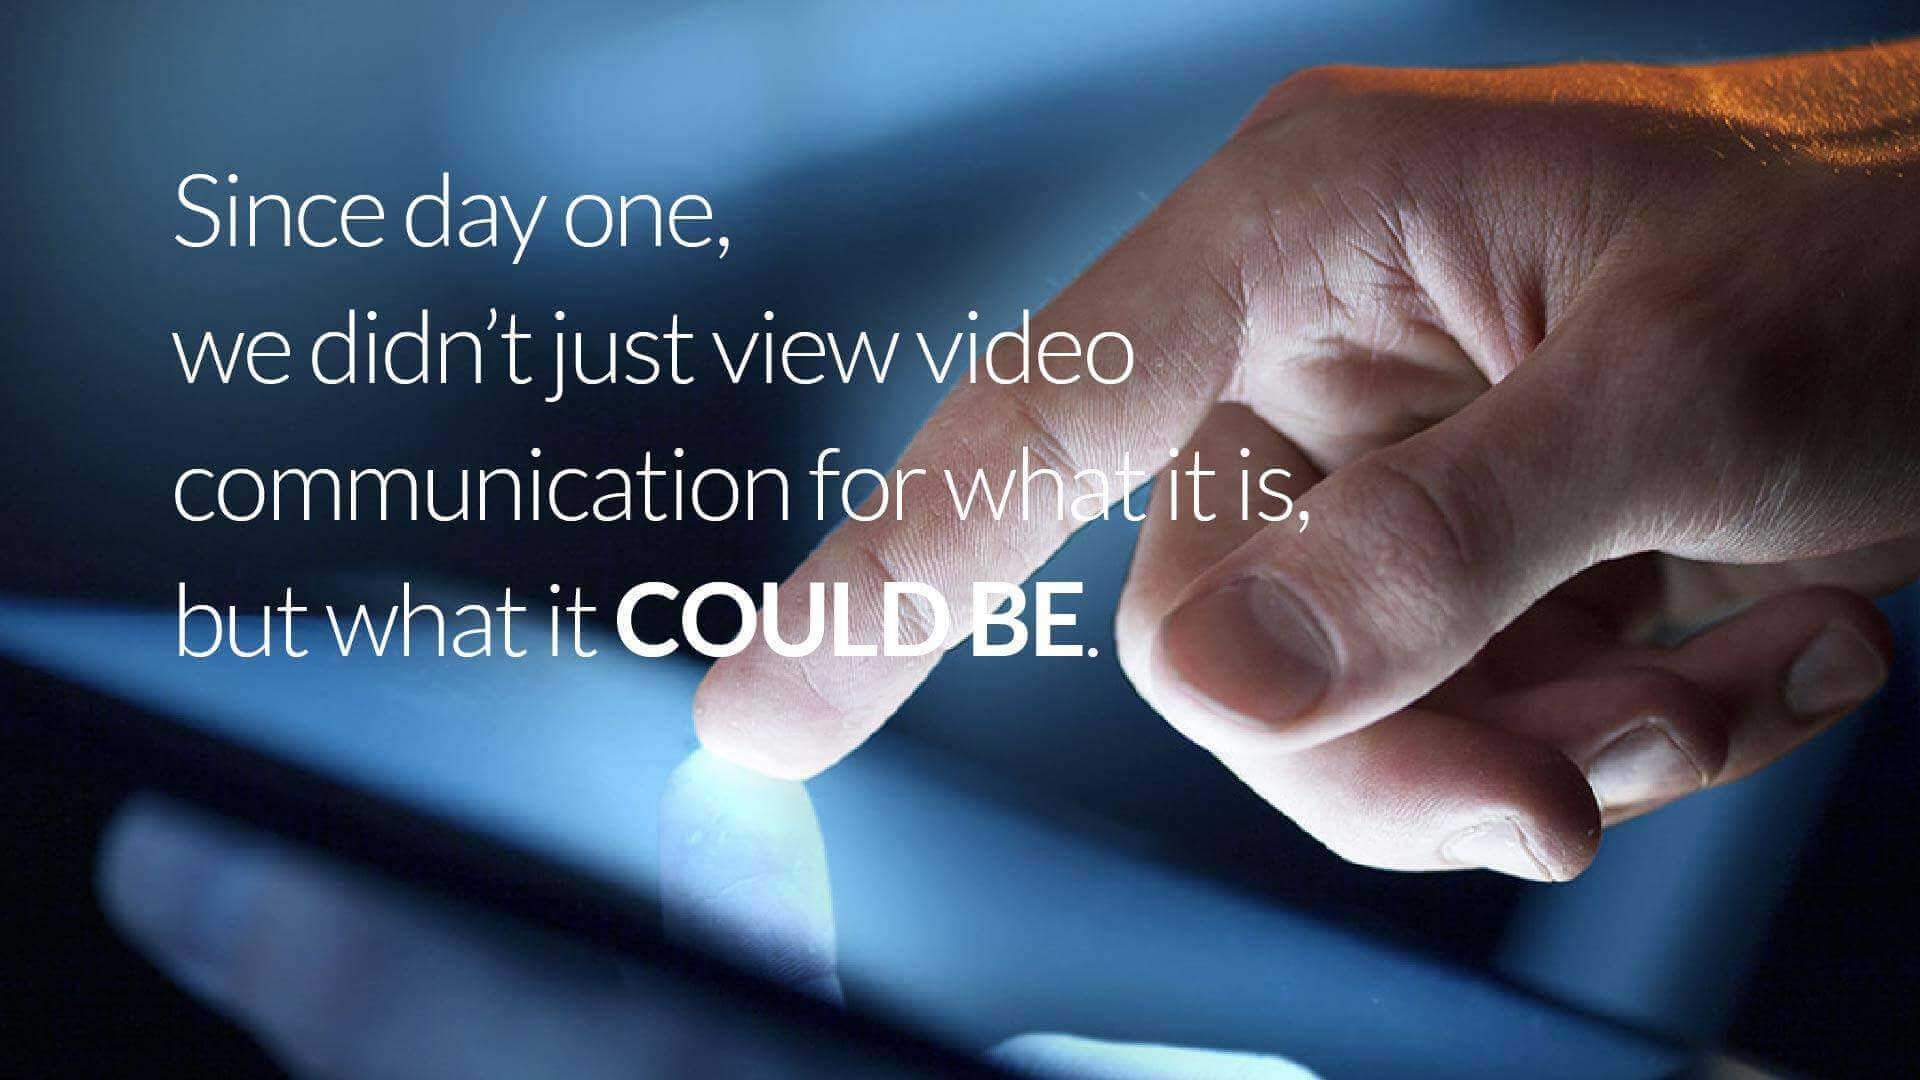 We are the First video marketing solution with best opportunity to work at home in 140 Countries